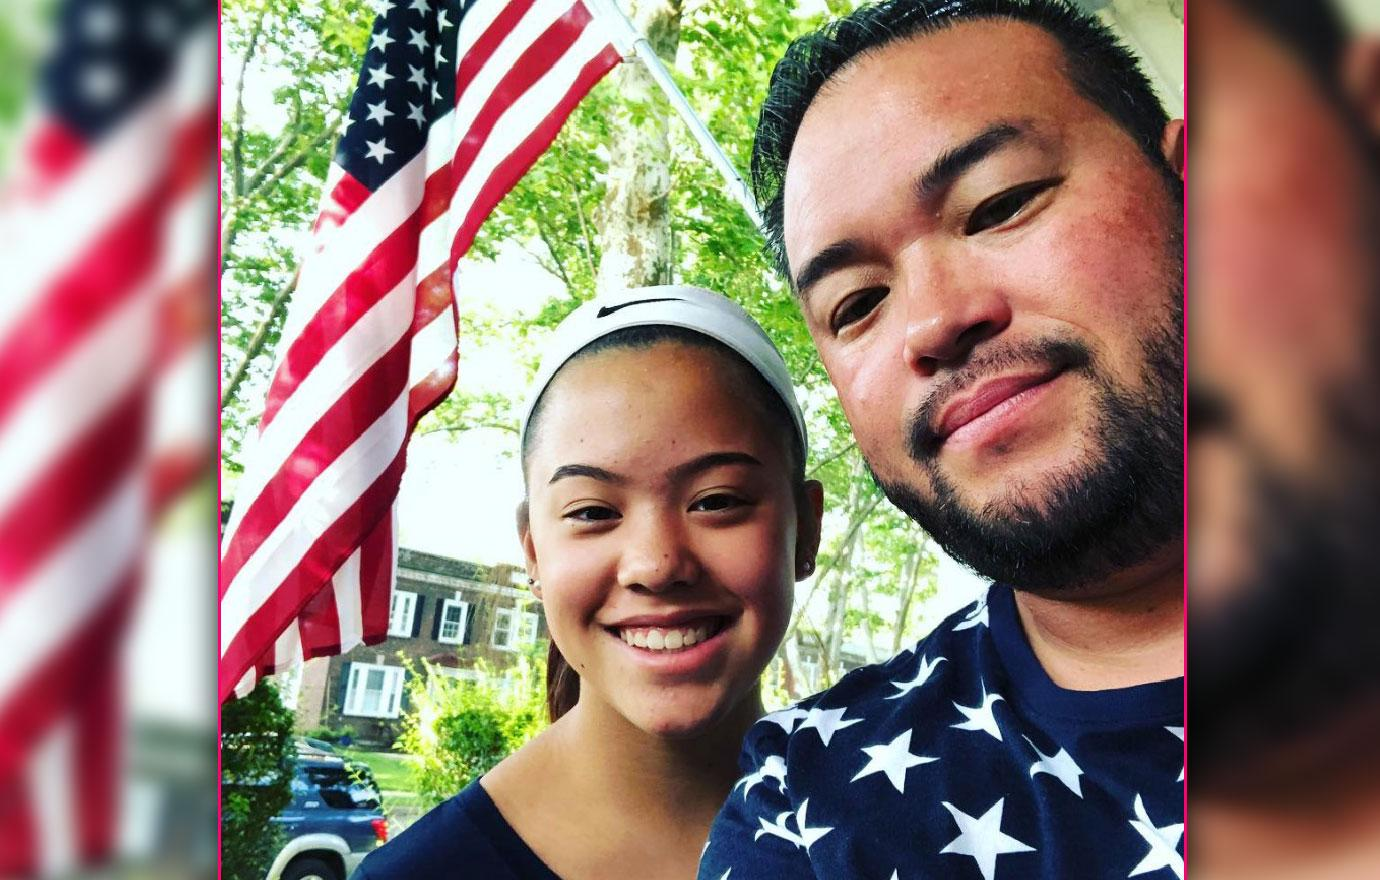 Jon Gosselin Spends 4th Of July With Daughter Hannah